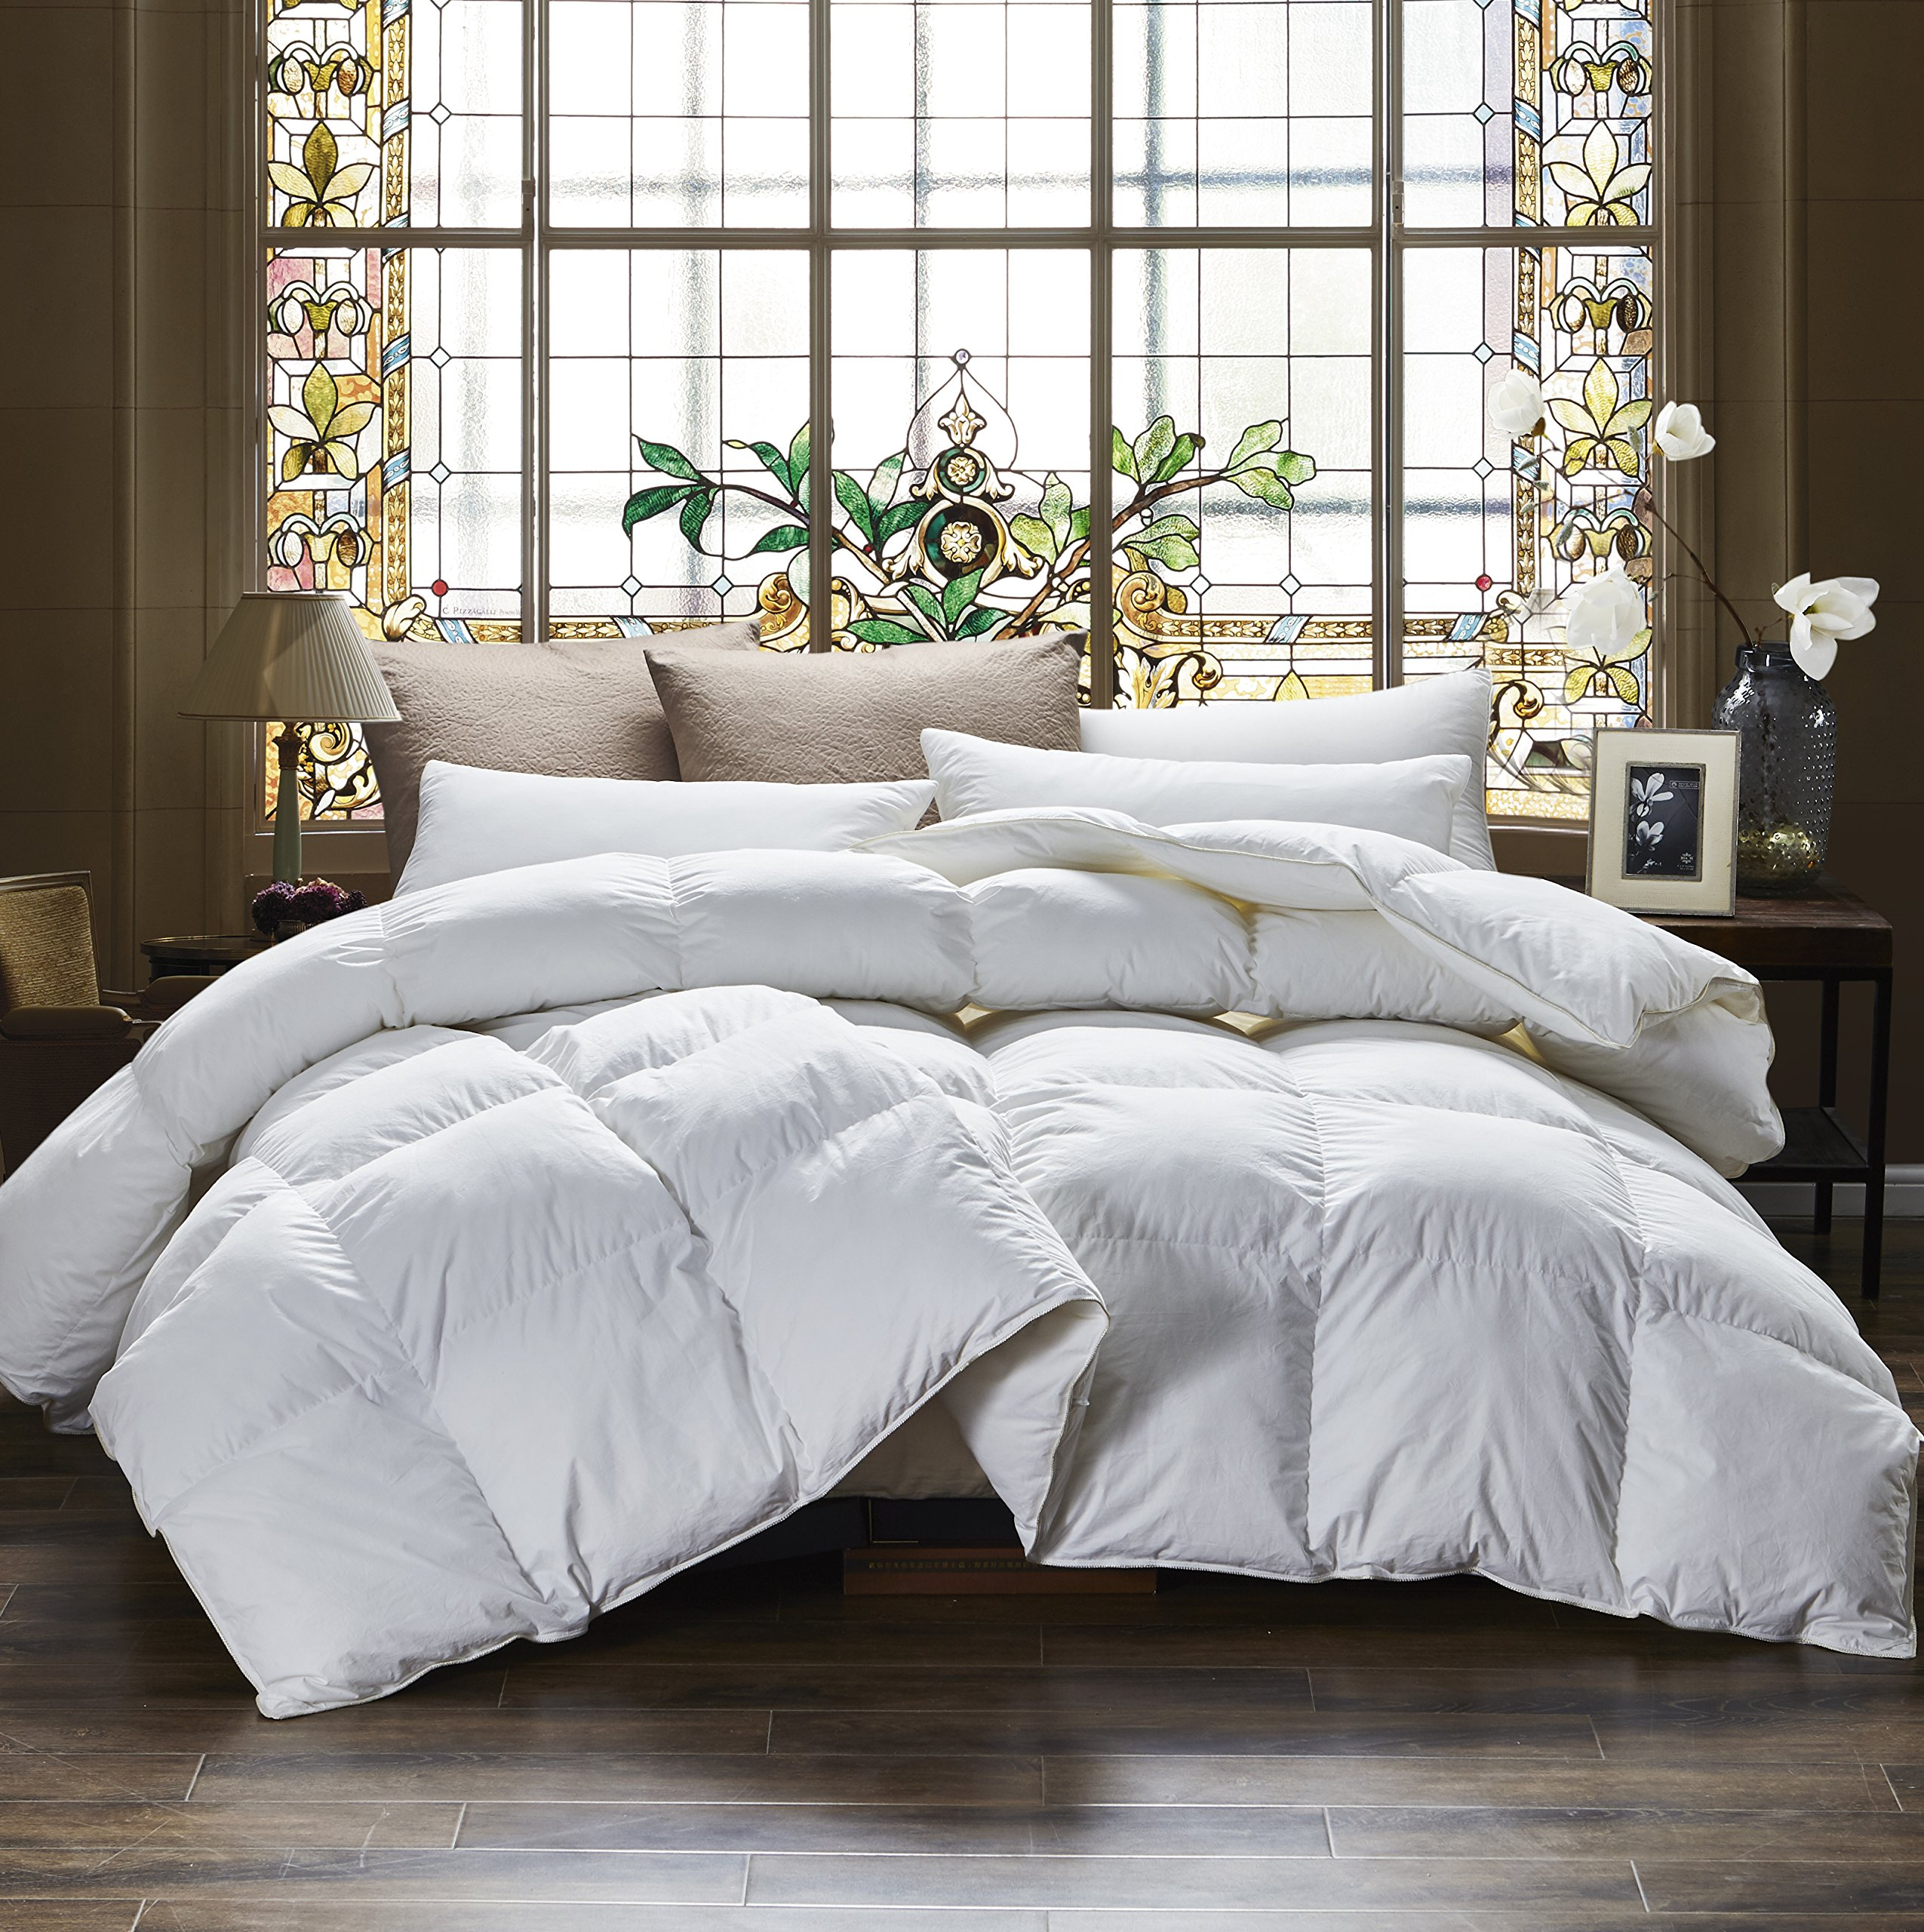 Egyptian Bedding 1000 Thread Count Full / Queen Oversized Siberian Goose Down Comforter - 100% Egyptian Cotton, 750FP, 50oz, 1000TC, White, Allergy Free